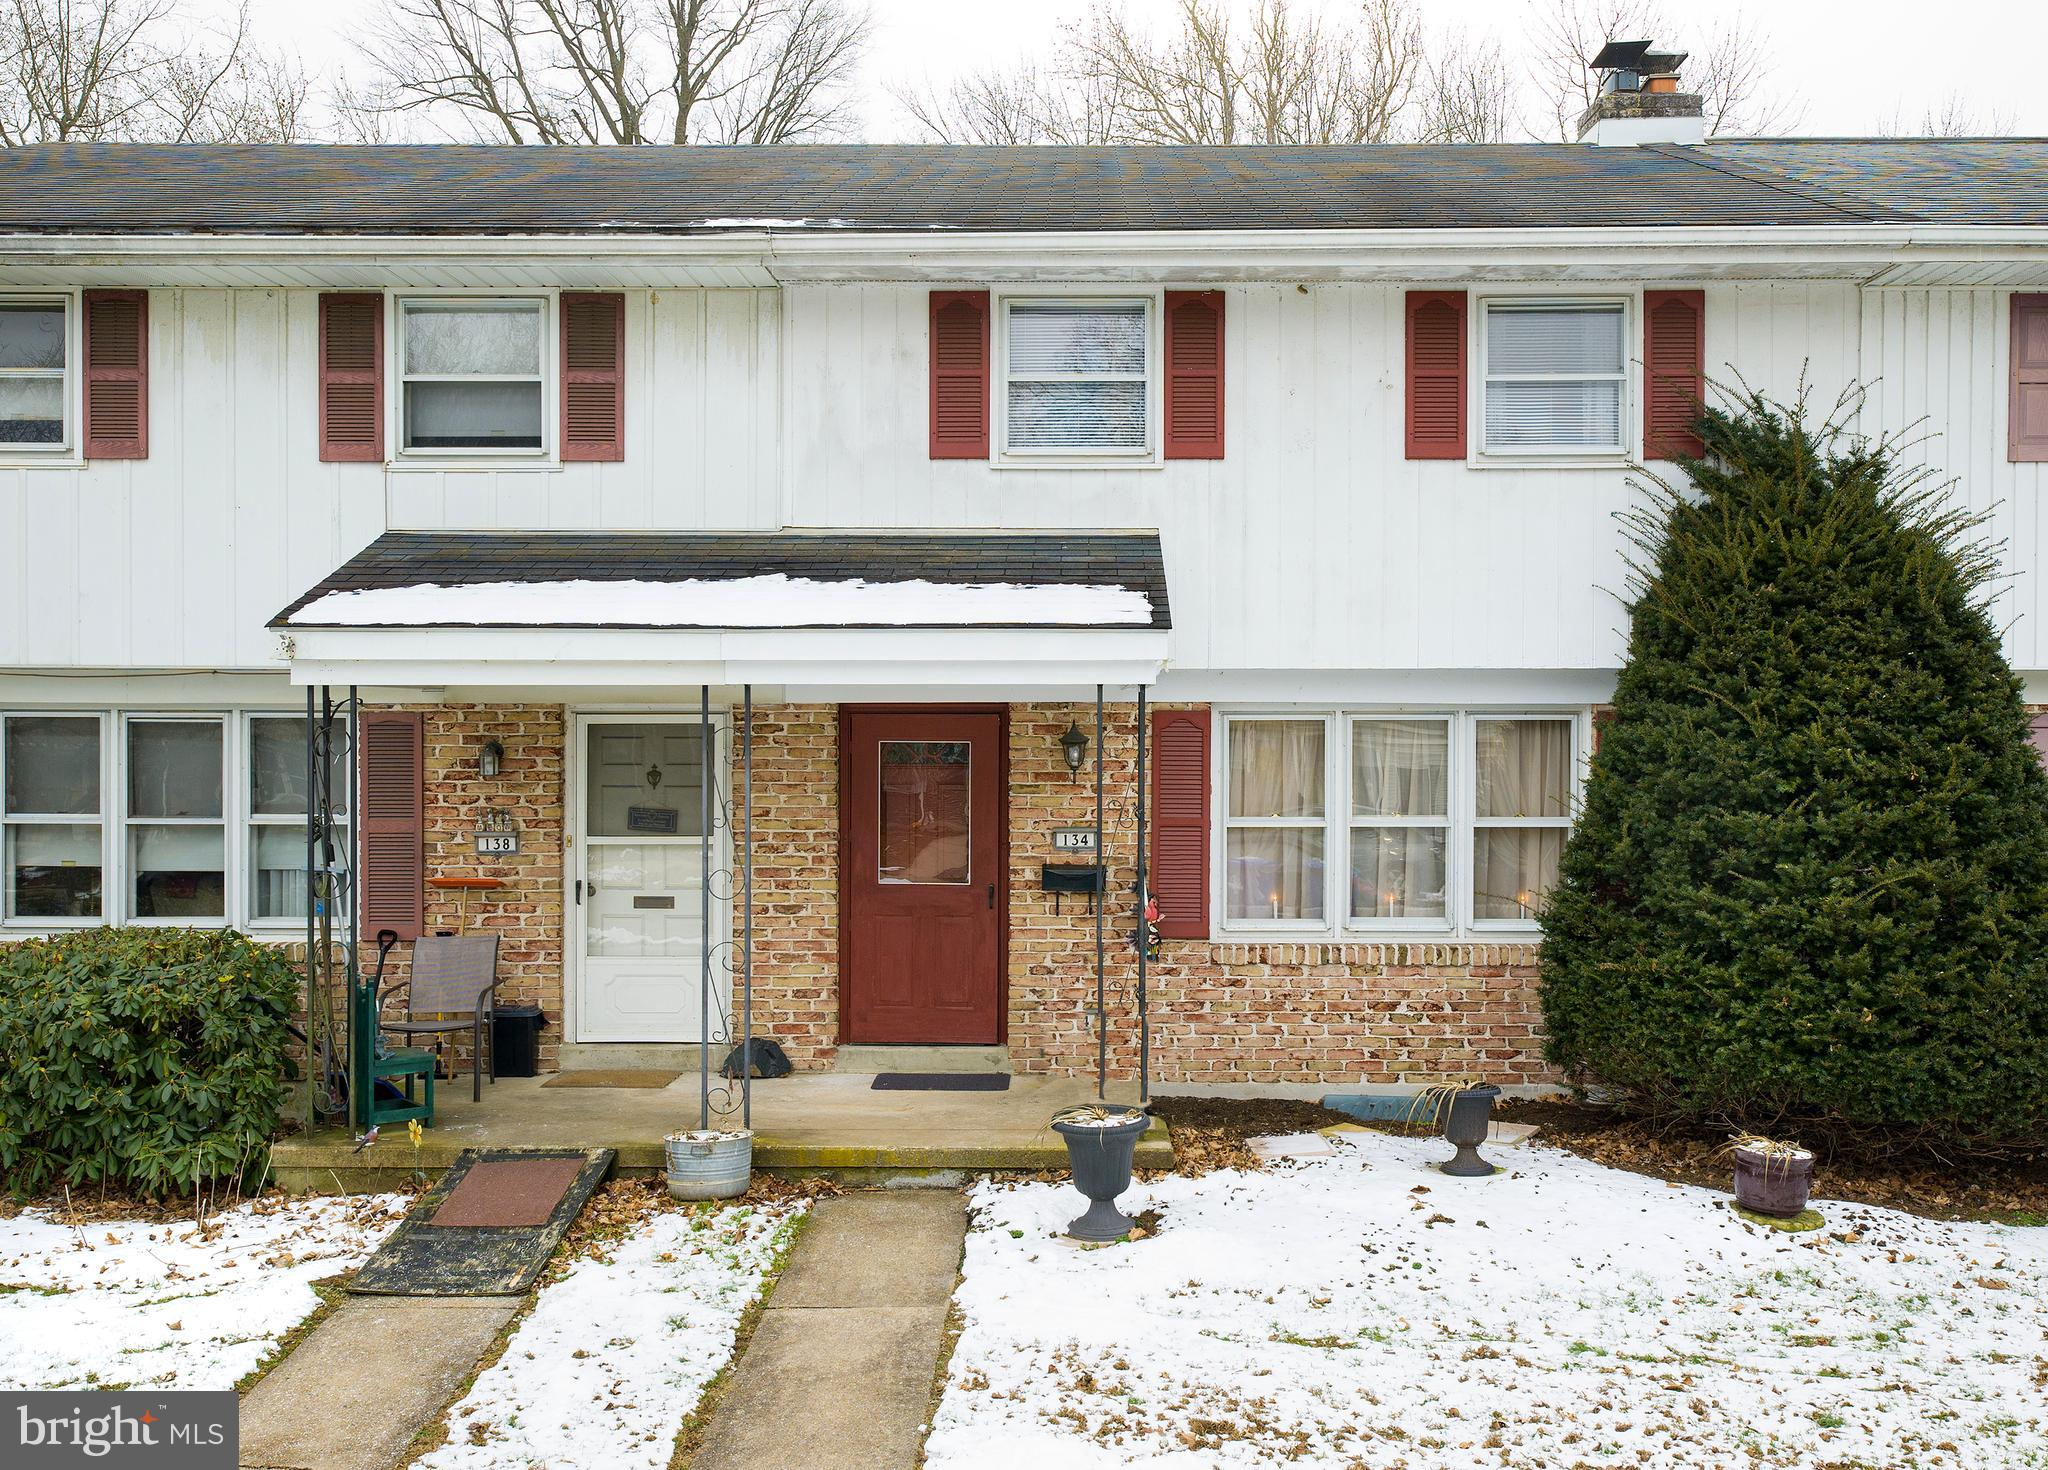 134 PENNBROOK AVENUE, ROBESONIA, PA 19551